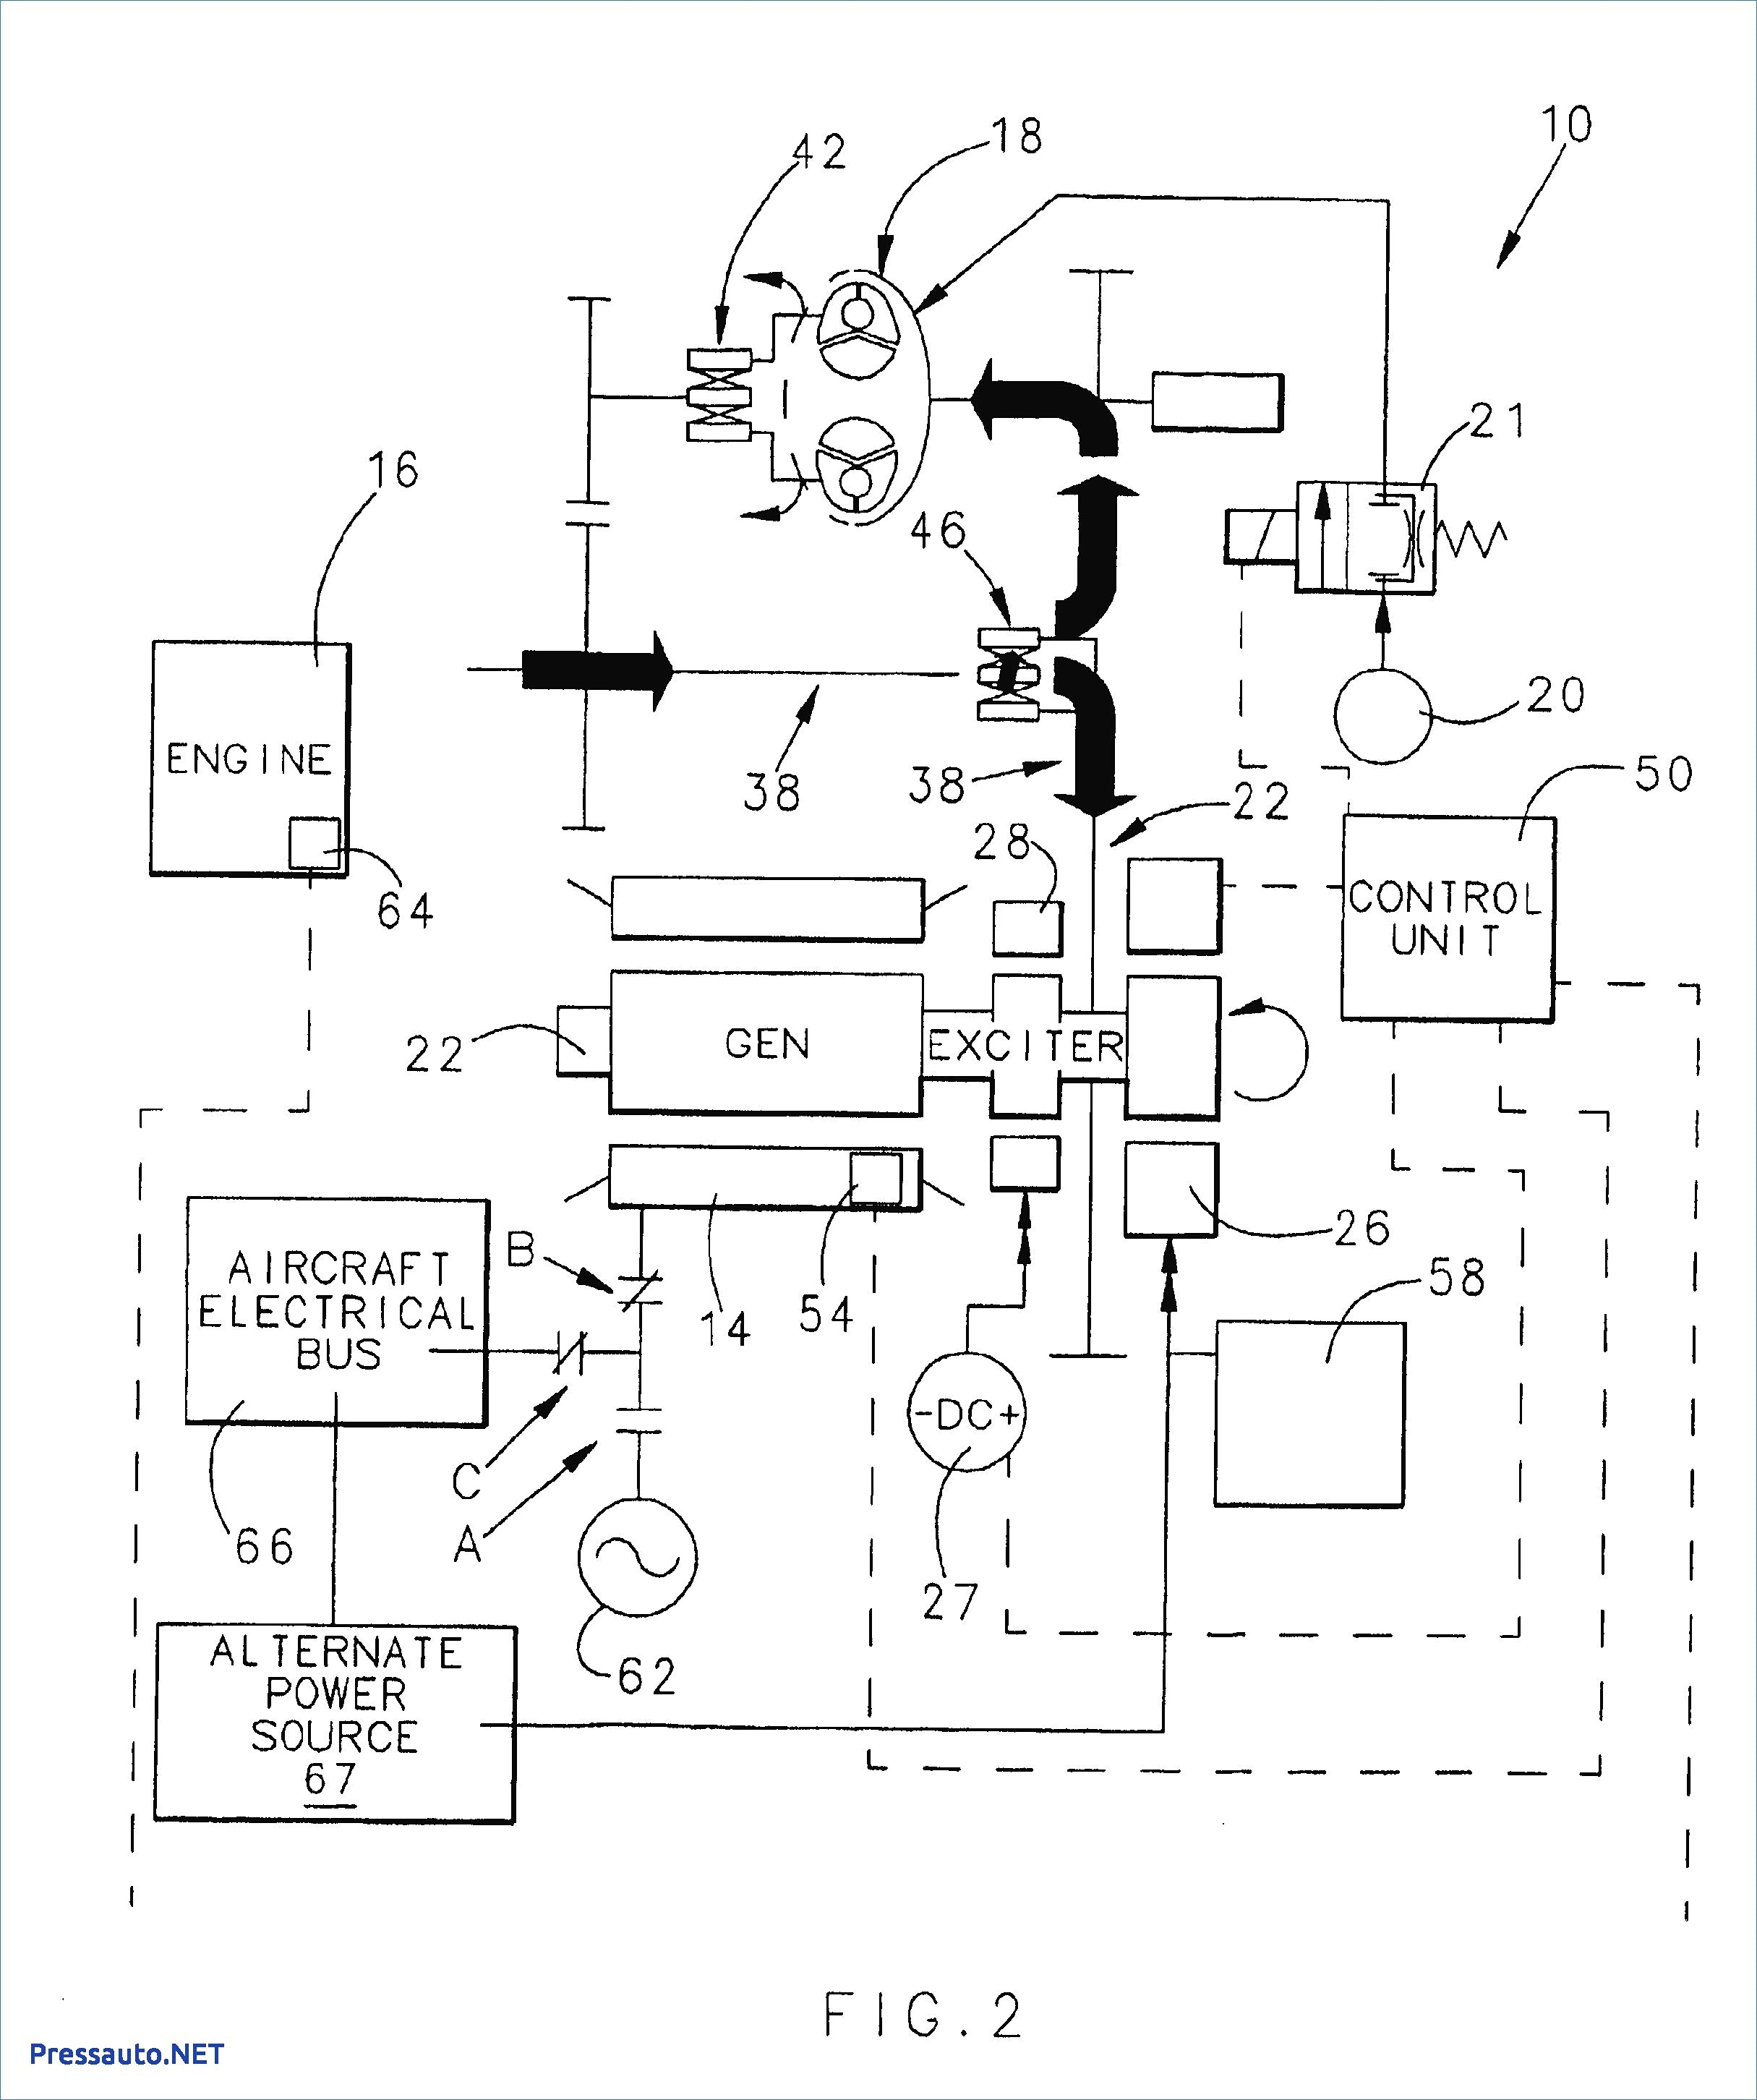 Delco Remy 10si Alternator Wiring Diagram | Wiring Diagram